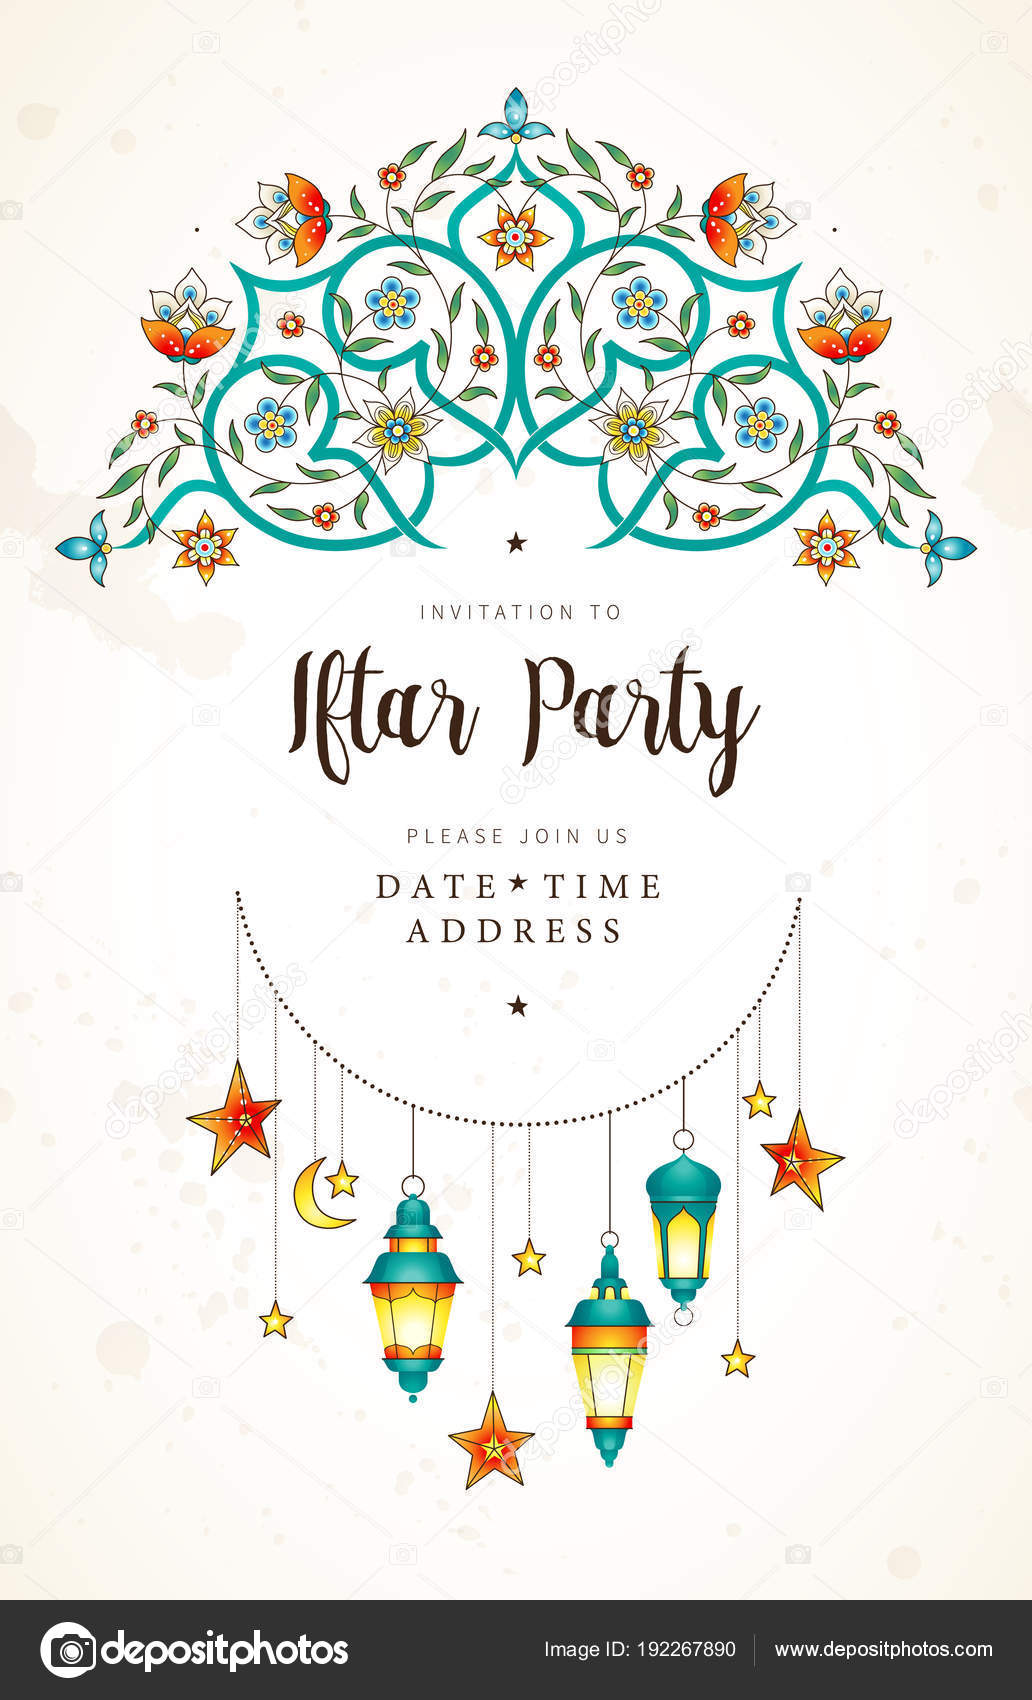 Vector Cards For Invitation To Iftar Party Celebration